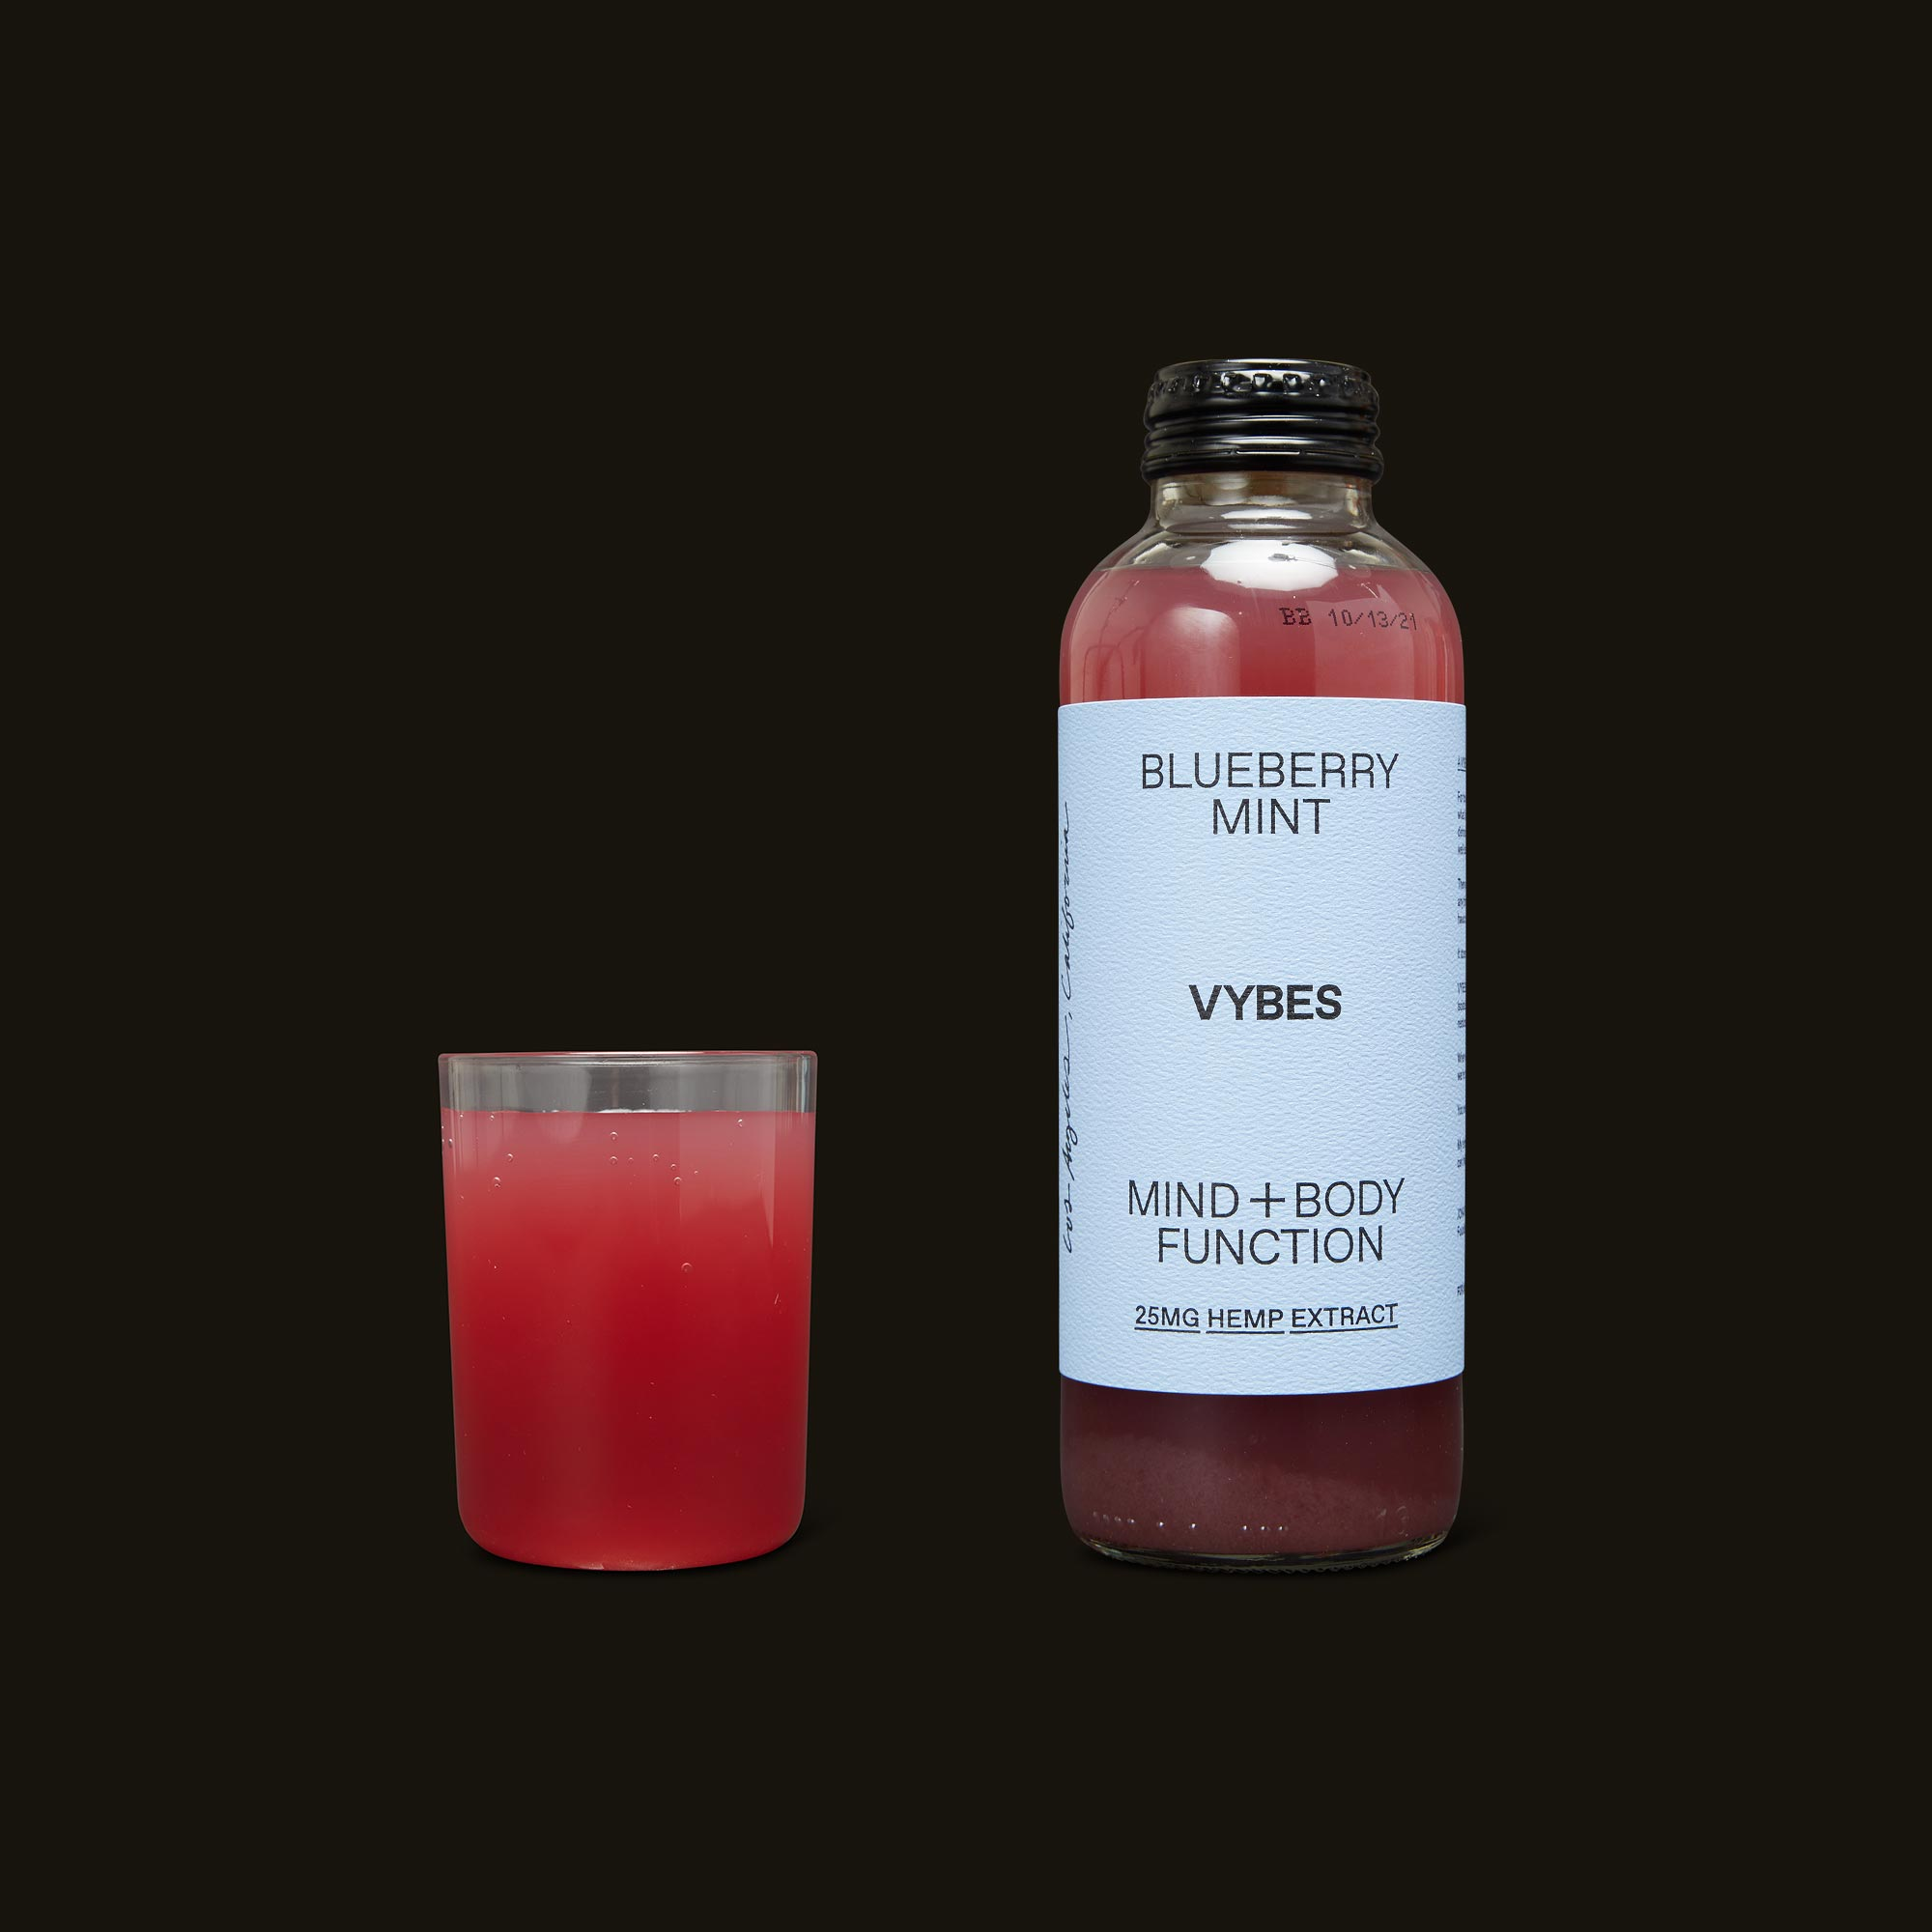 VYBES Blueberry Mint